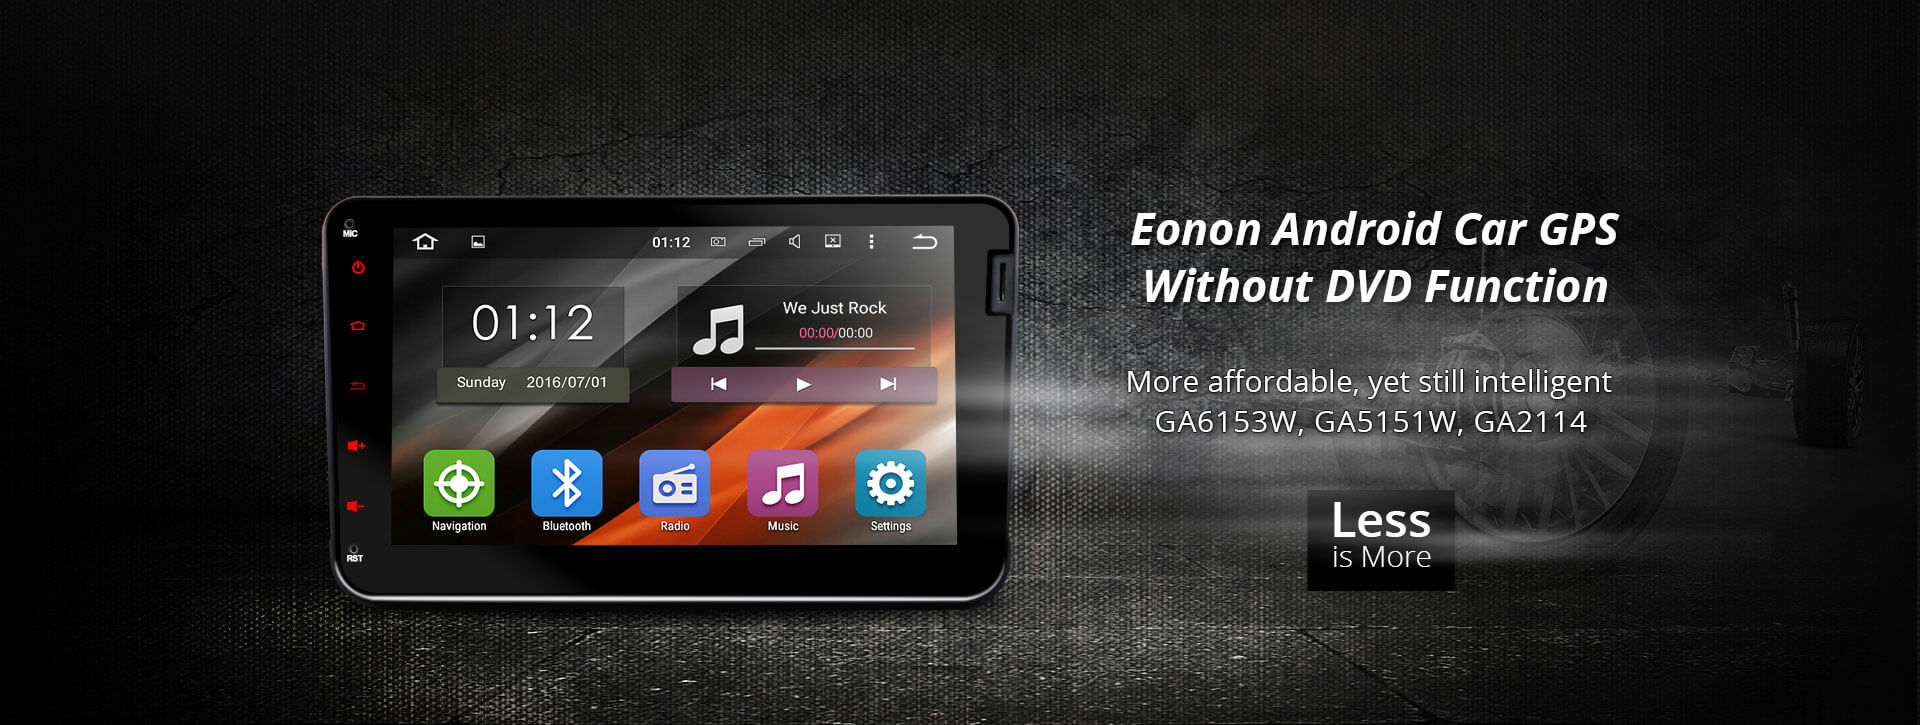 Eonon Android 4.4 Car GPS without DVD Function,yet still intelligent